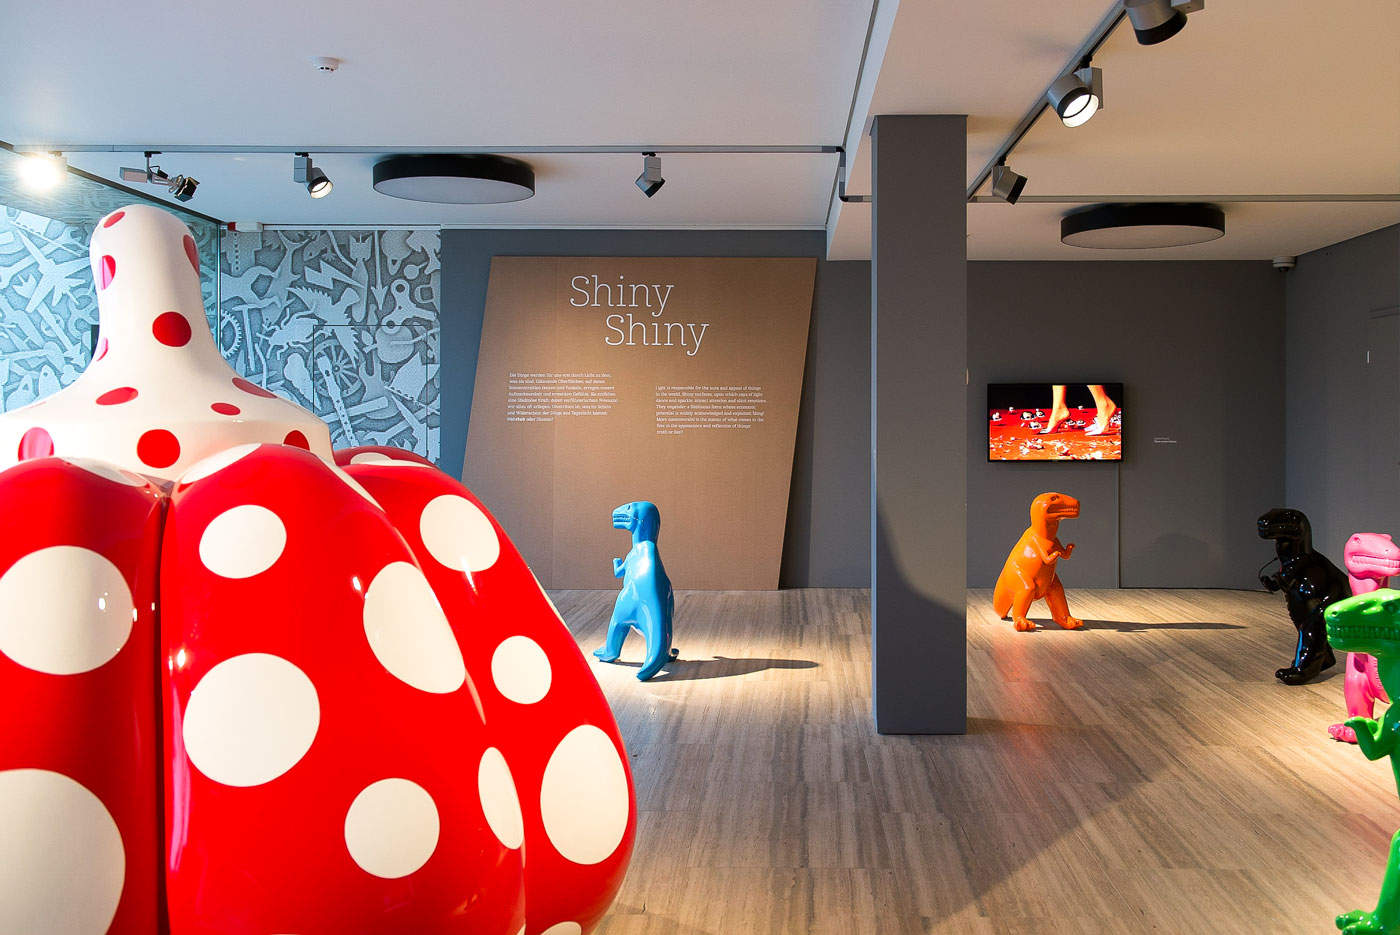 Blue Moon 05: Exhibition view with works by Yayoi Kusama, Sui Jianguo and Sylvie Fleuri